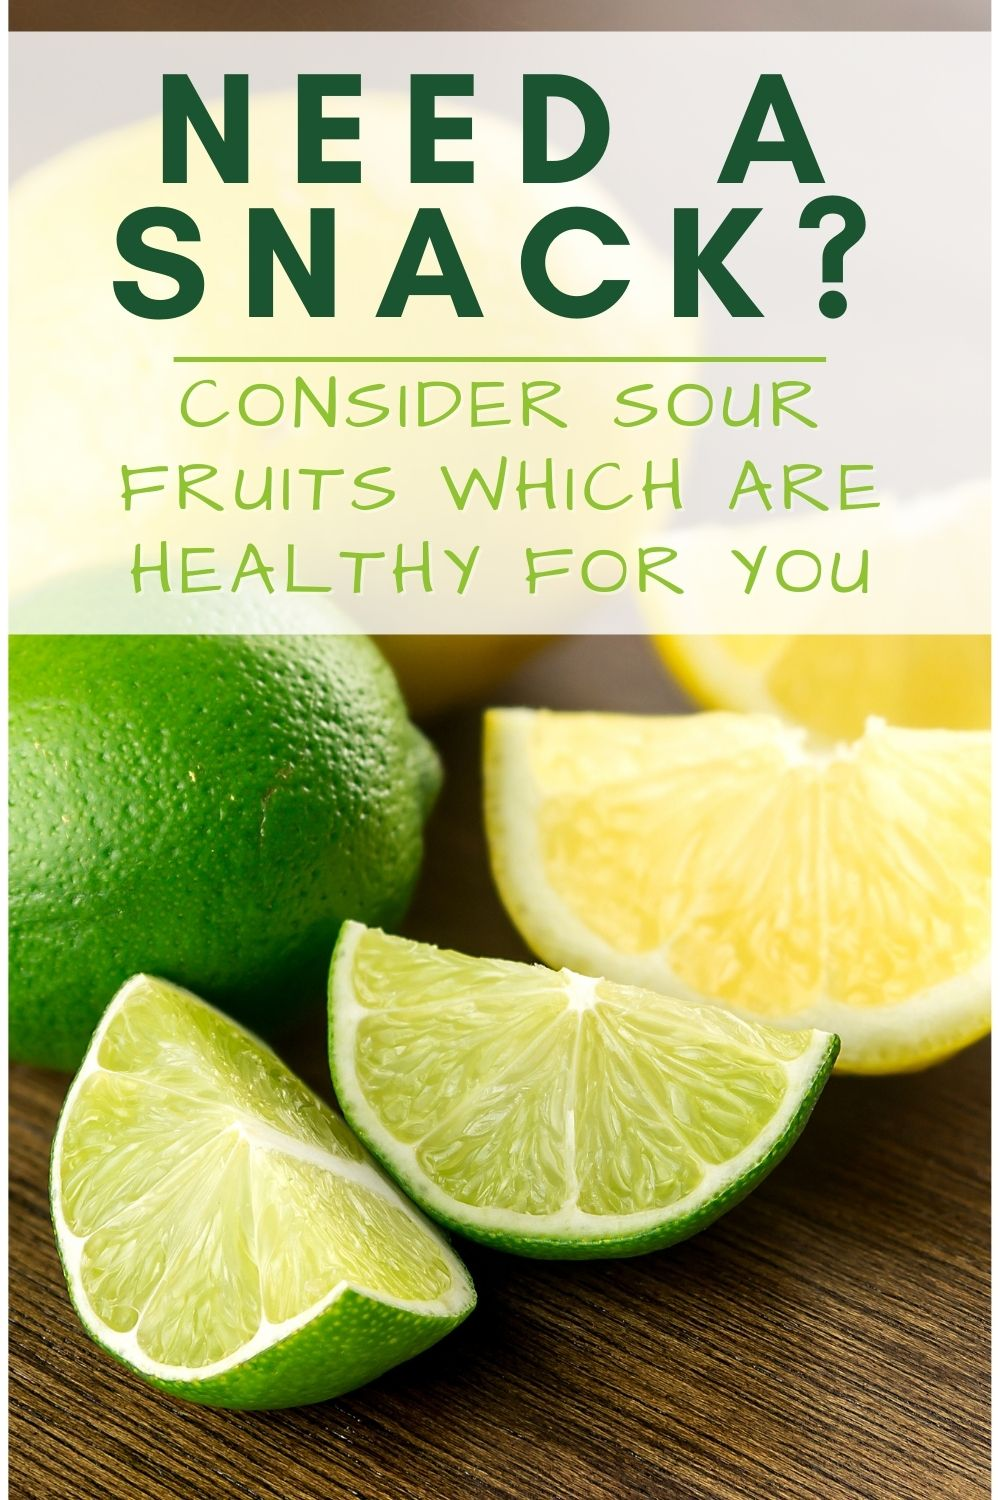 Healthy Sour Fruits